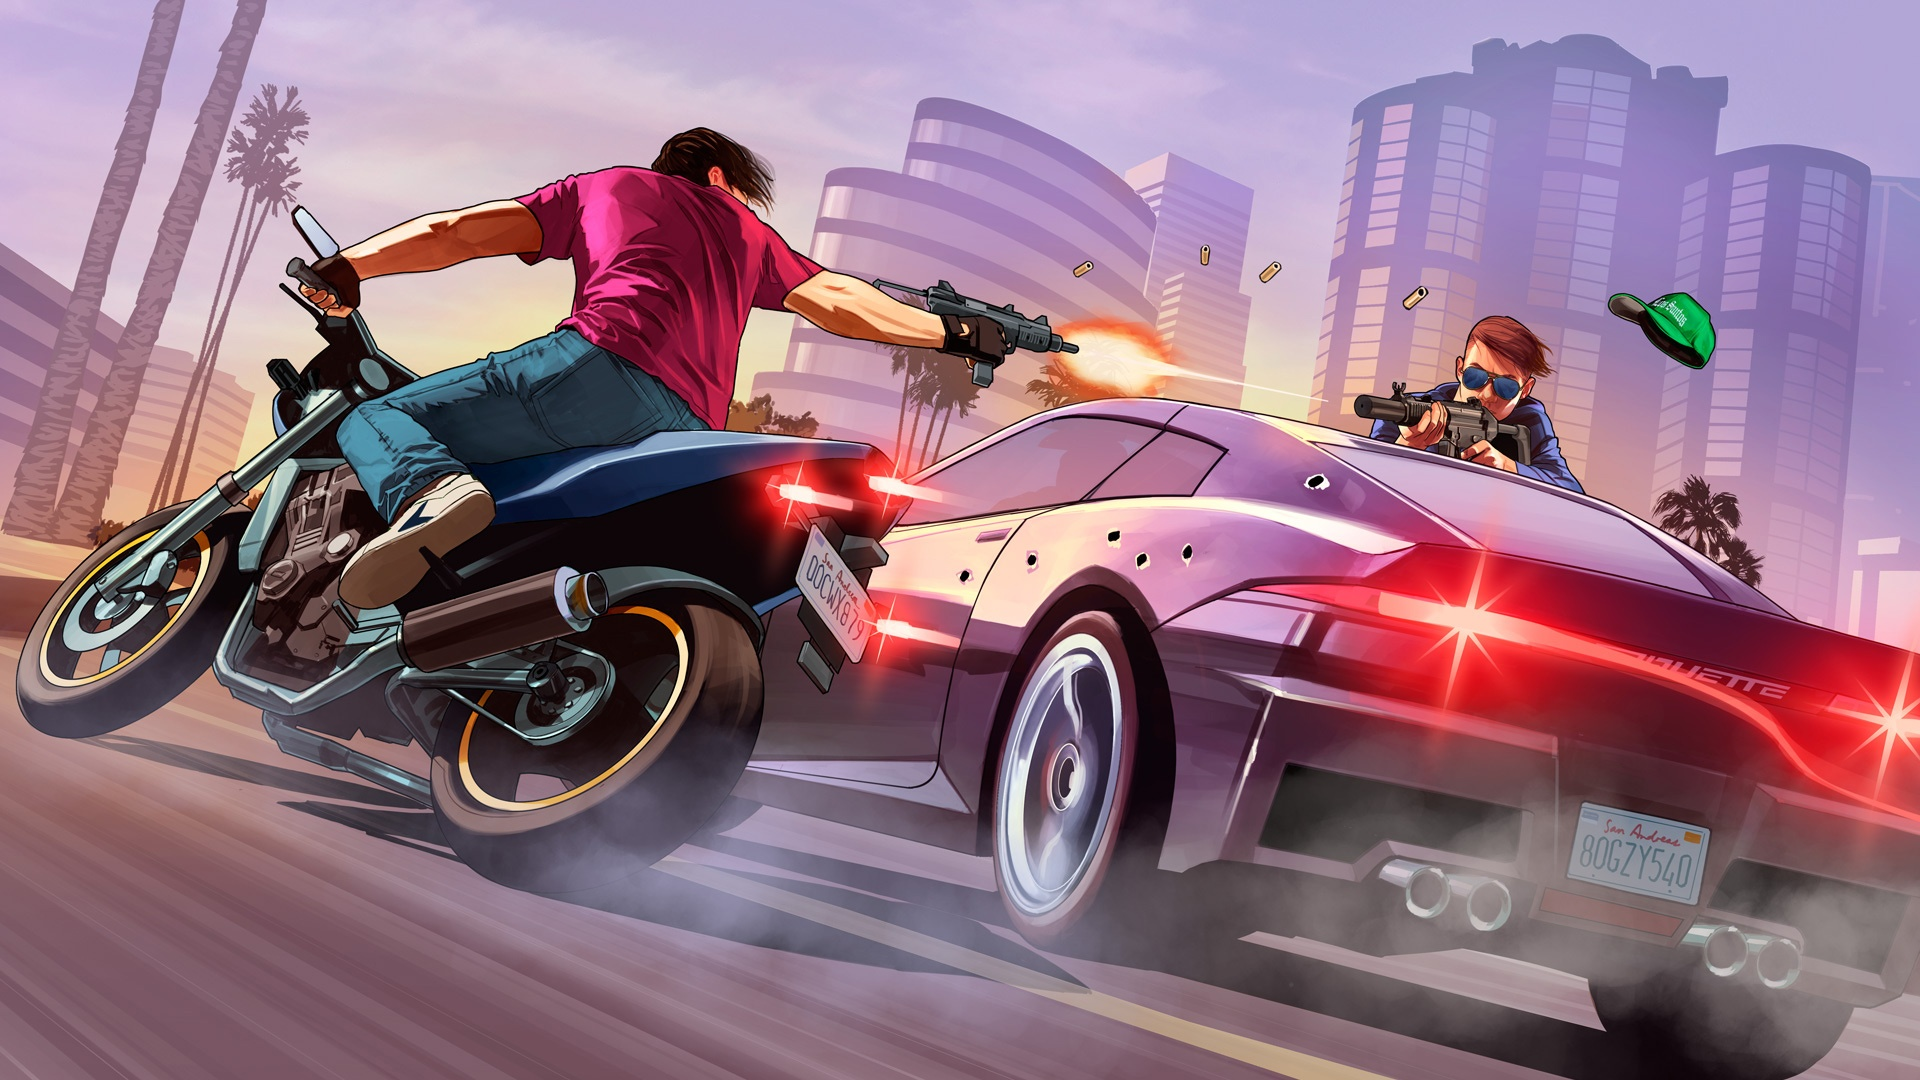 Grand theft auto 4 dating 8